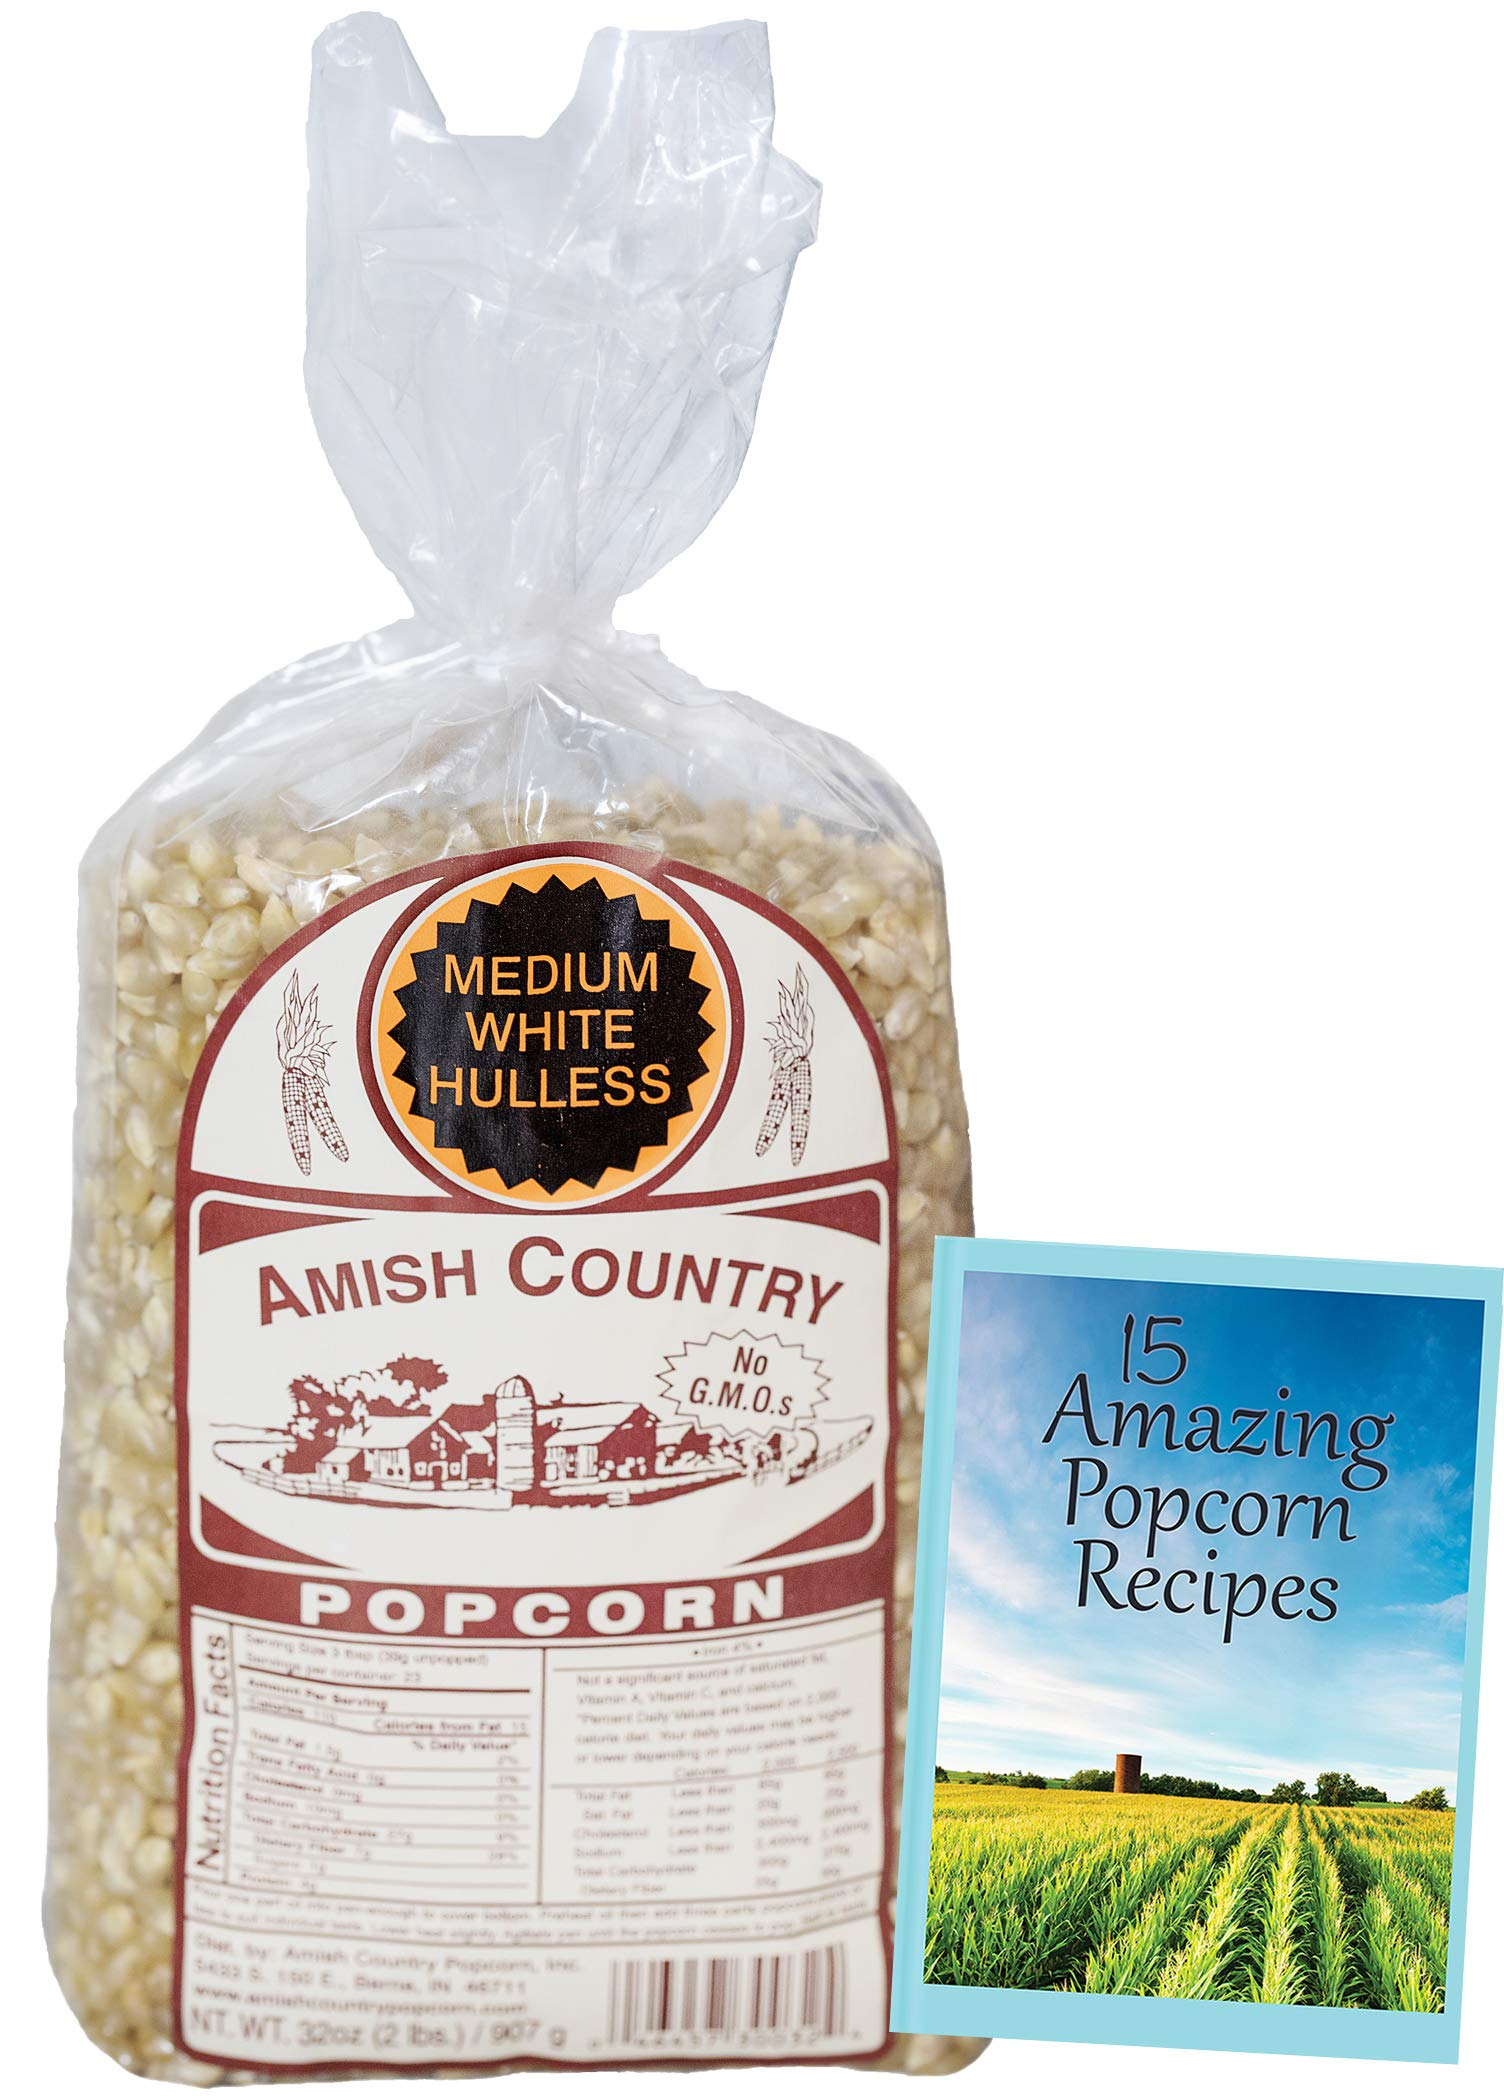 Amish Country Popcorn - Medium White Popcorn (2 Pound Bag) Old Fashioned, Non GMO, and Gluten Free - with Recipe Guide by Amish Country Popcorn (Image #2)